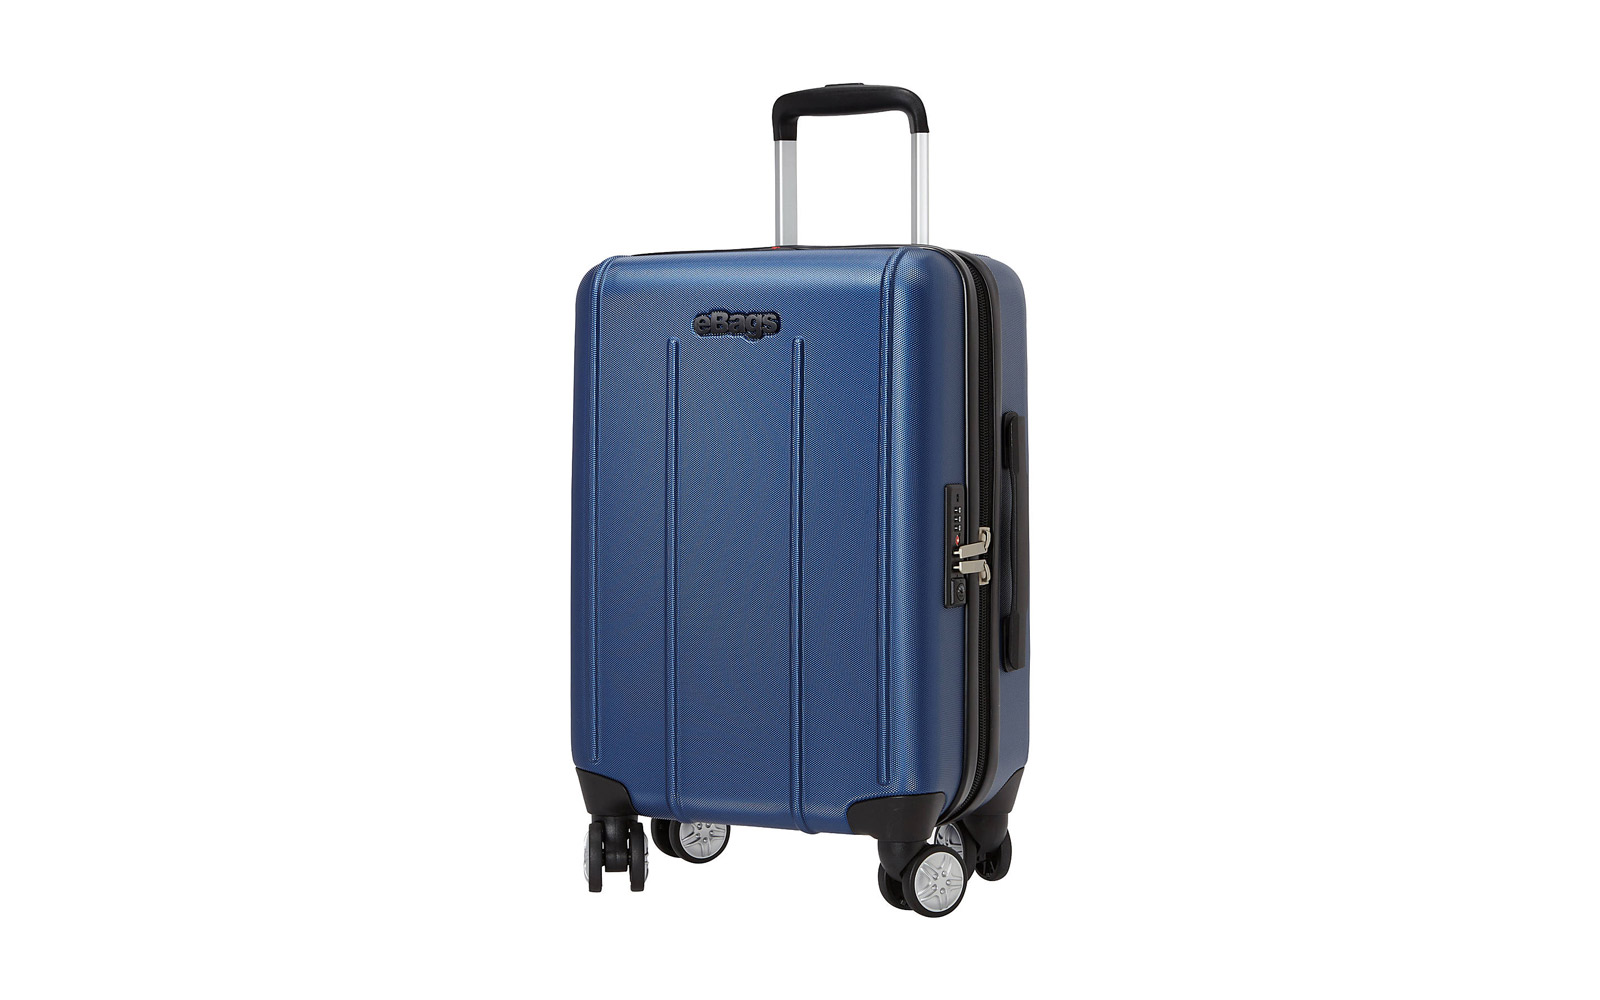 8775b818df27 A Carry-on Luggage Size Guide by Airline